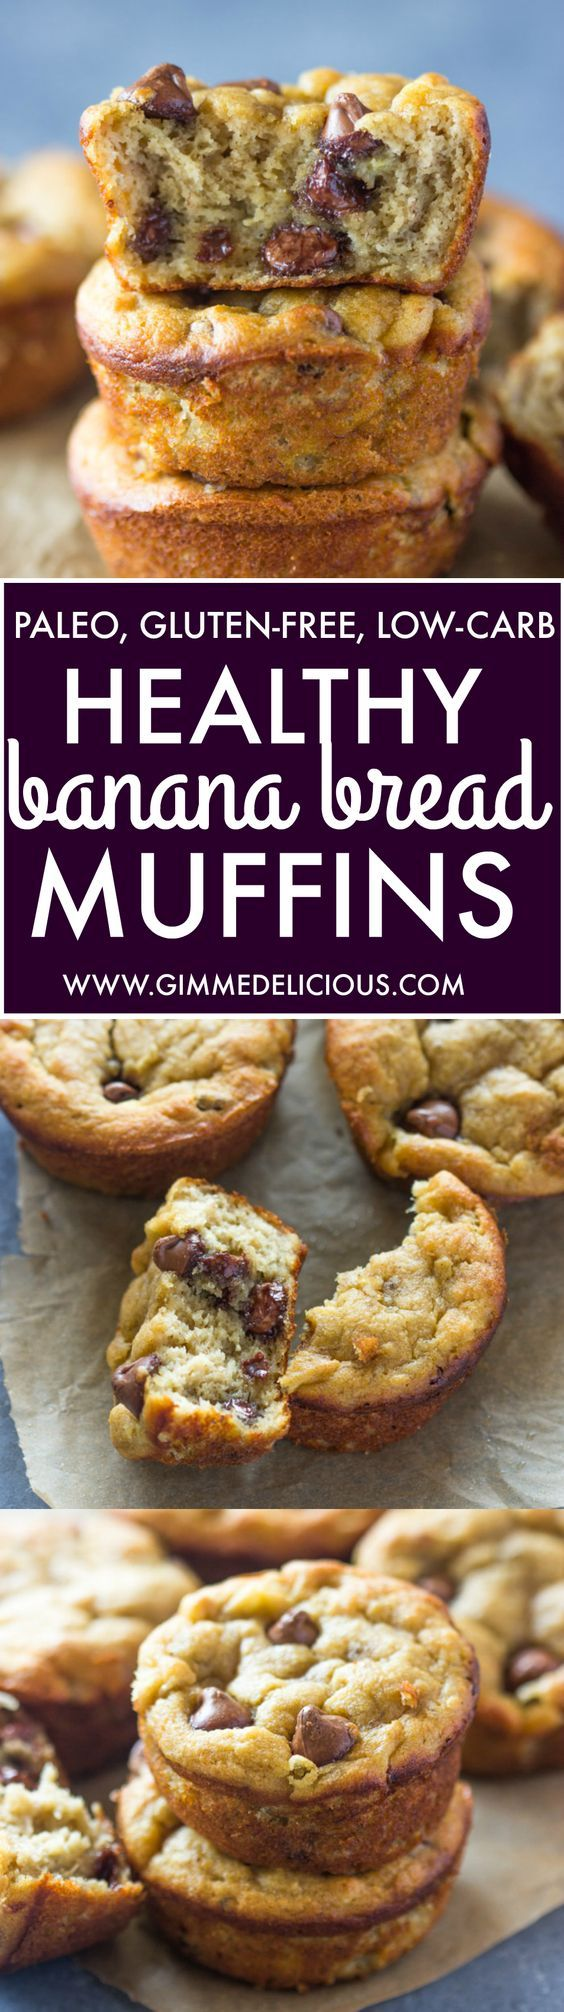 The Best Paleo Banana Bread Muffins (Gluten-Free, Low-Carb) (Christmas Bake Gluten Free)